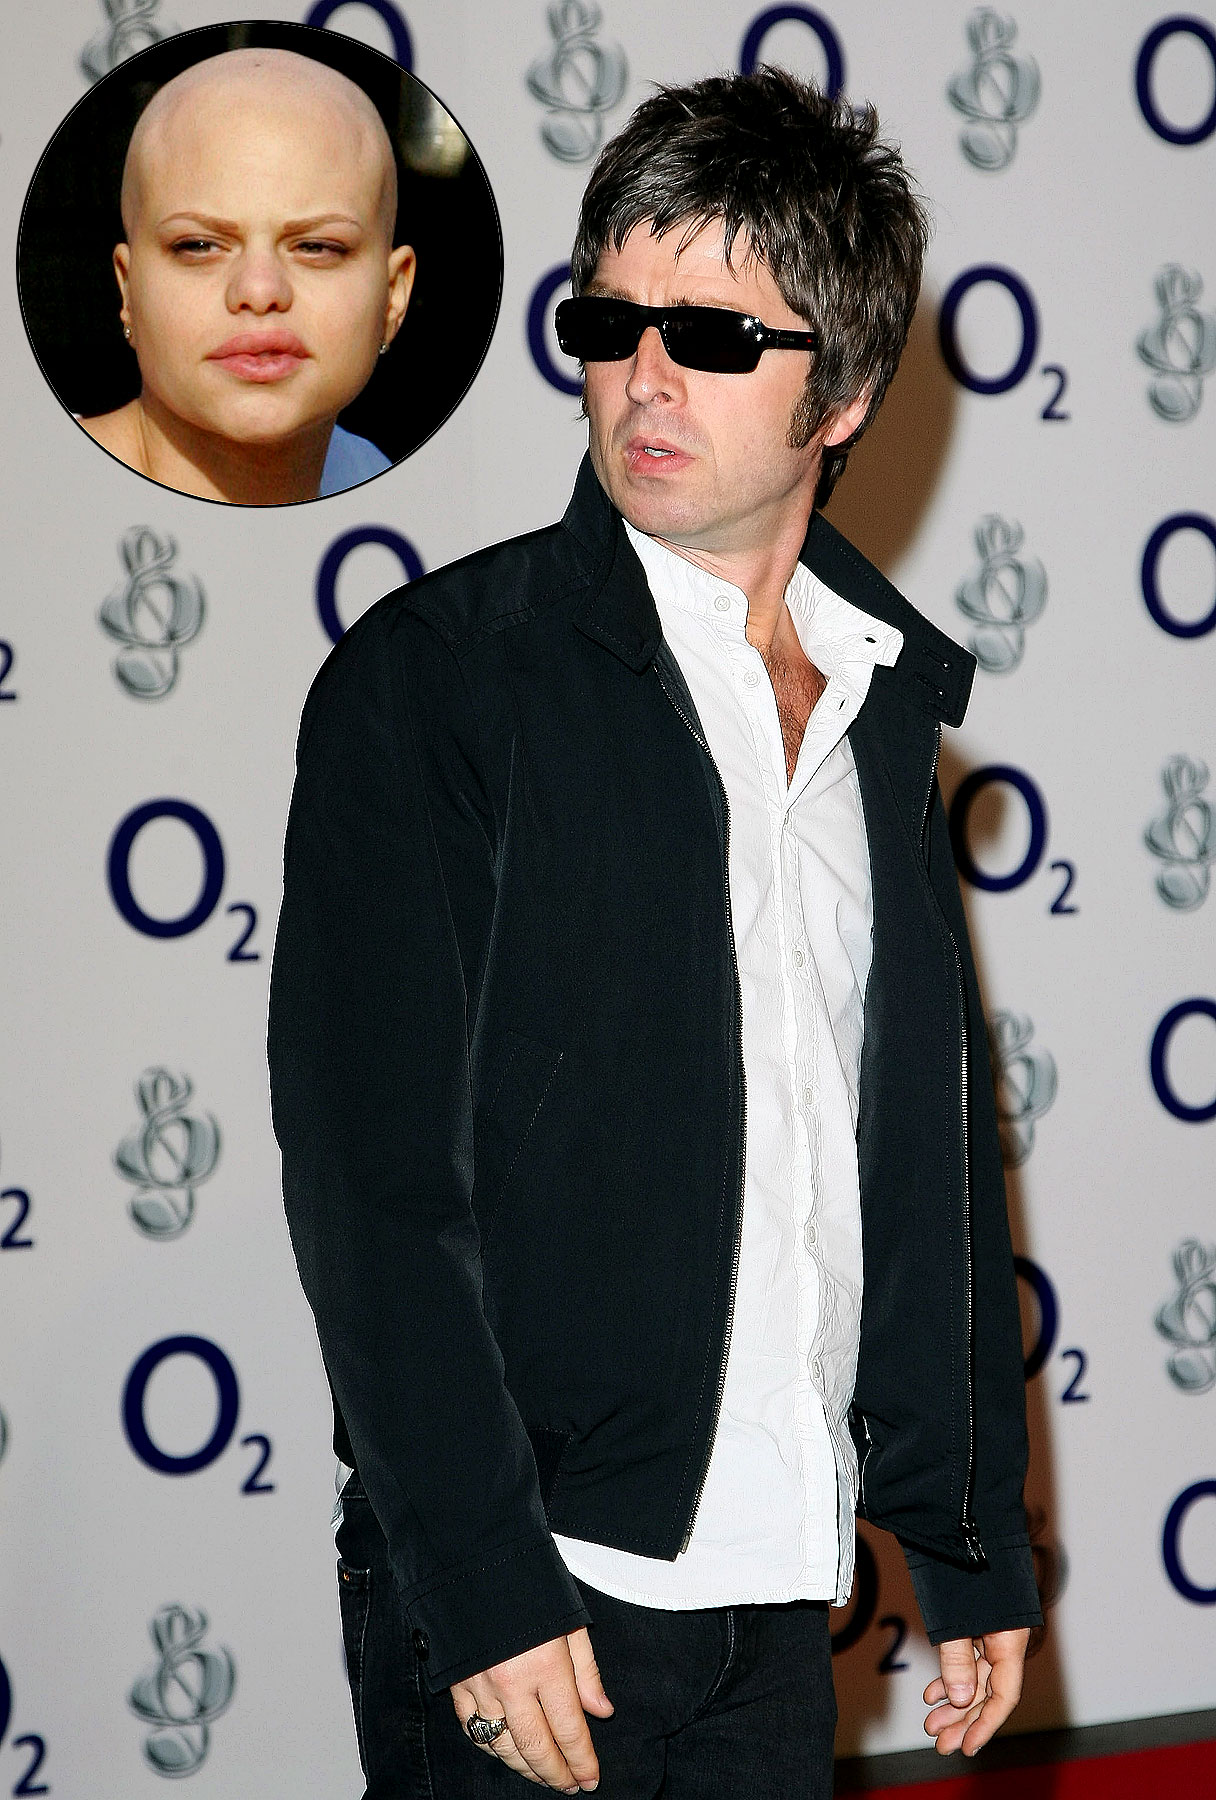 Noel Gallagher: Jade Goody Story Is 'Embarrassing' to Britain